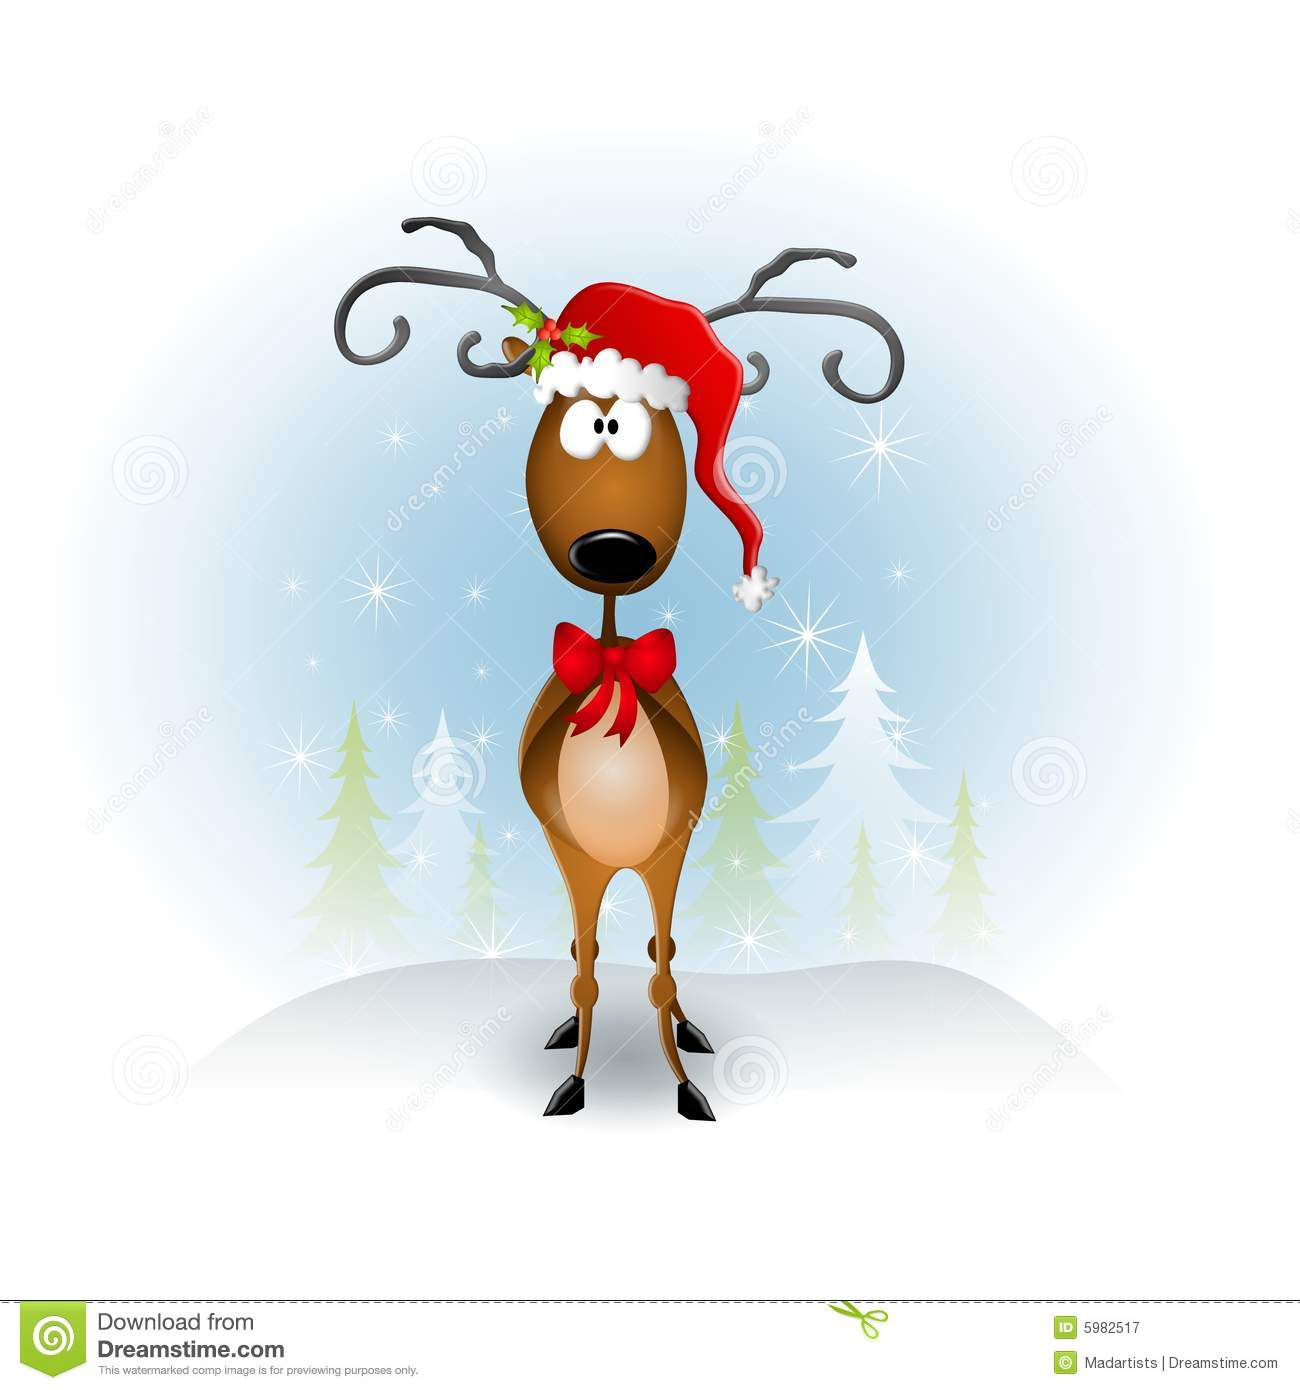 clip art illustration featuring a reindeer wearing a red Santa hat ...